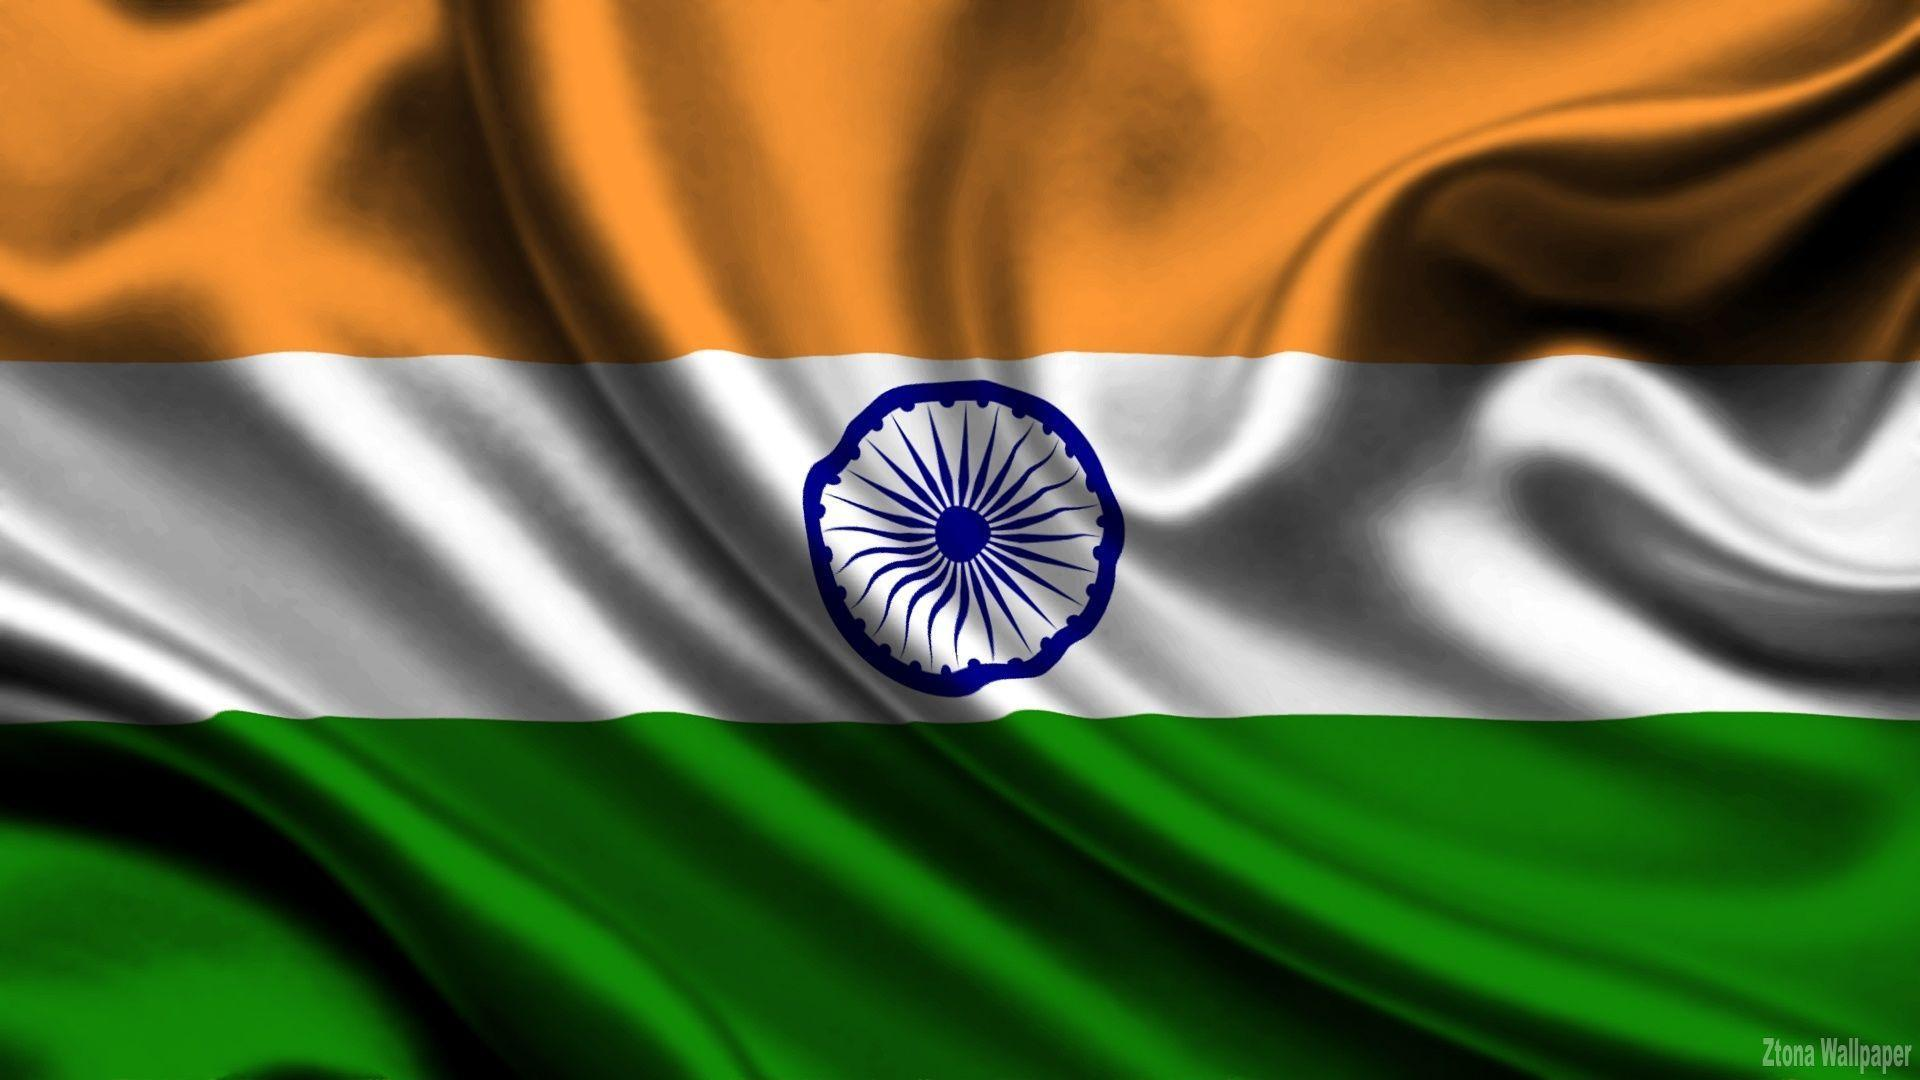 Indian Flag Mobile Wallpapers 2016 - Wallpaper Cave